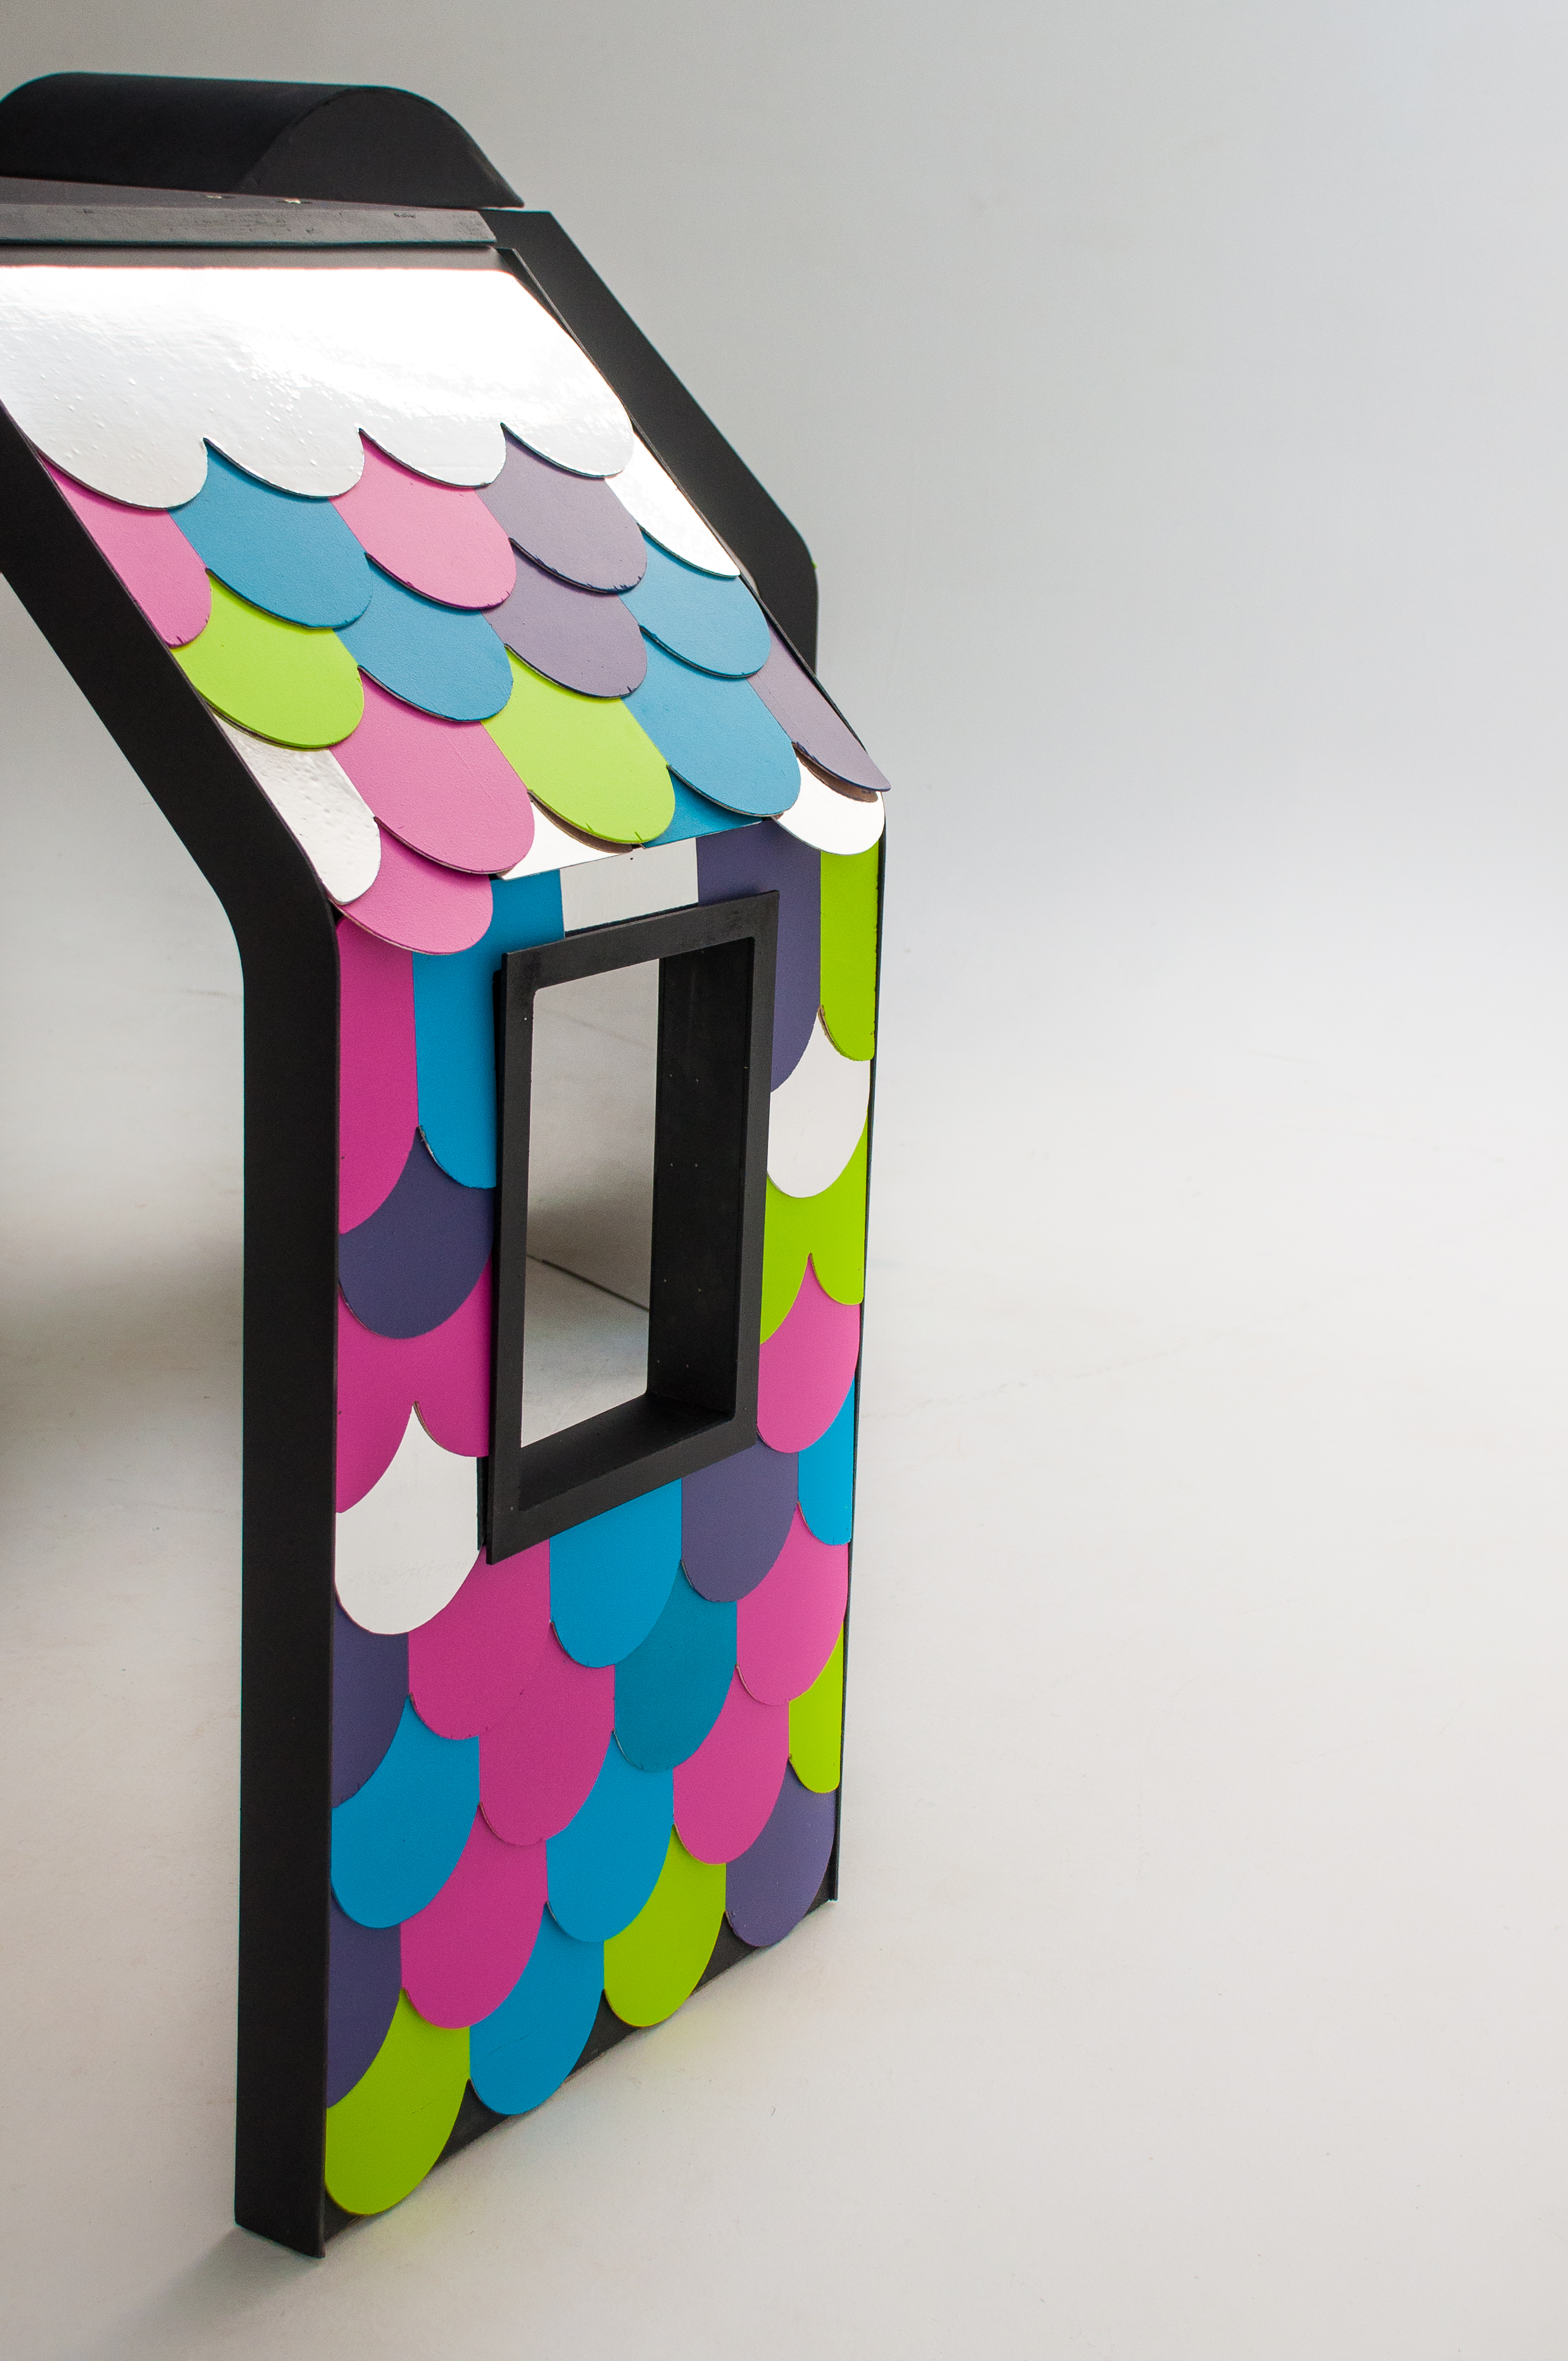 The resulting playhouse, clad in brand-coloured shingles and containing mirrored and magnetic interior surfaces, was designed and fabricated for maximum portability and super quick set-up & tear-down.